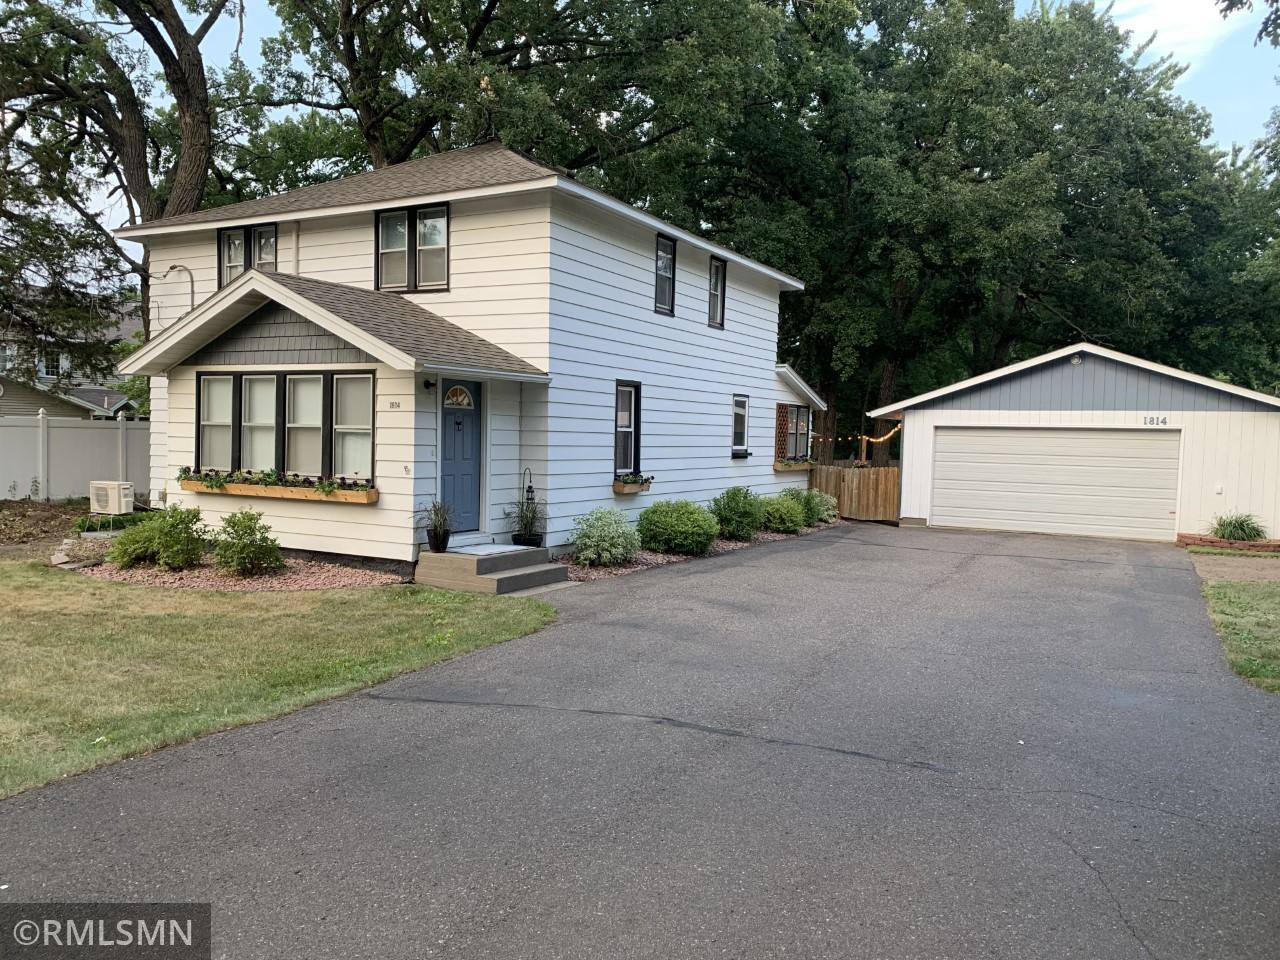 Pride in ownership is obvious with this very well maintained 3bed 2 bath home!  Escape to your very own private backyard oasis!  Many updates throughout the home including, flooring, windows, paint, countertops, appliances, air conditioning, and more.  A very comfortable, nice home.